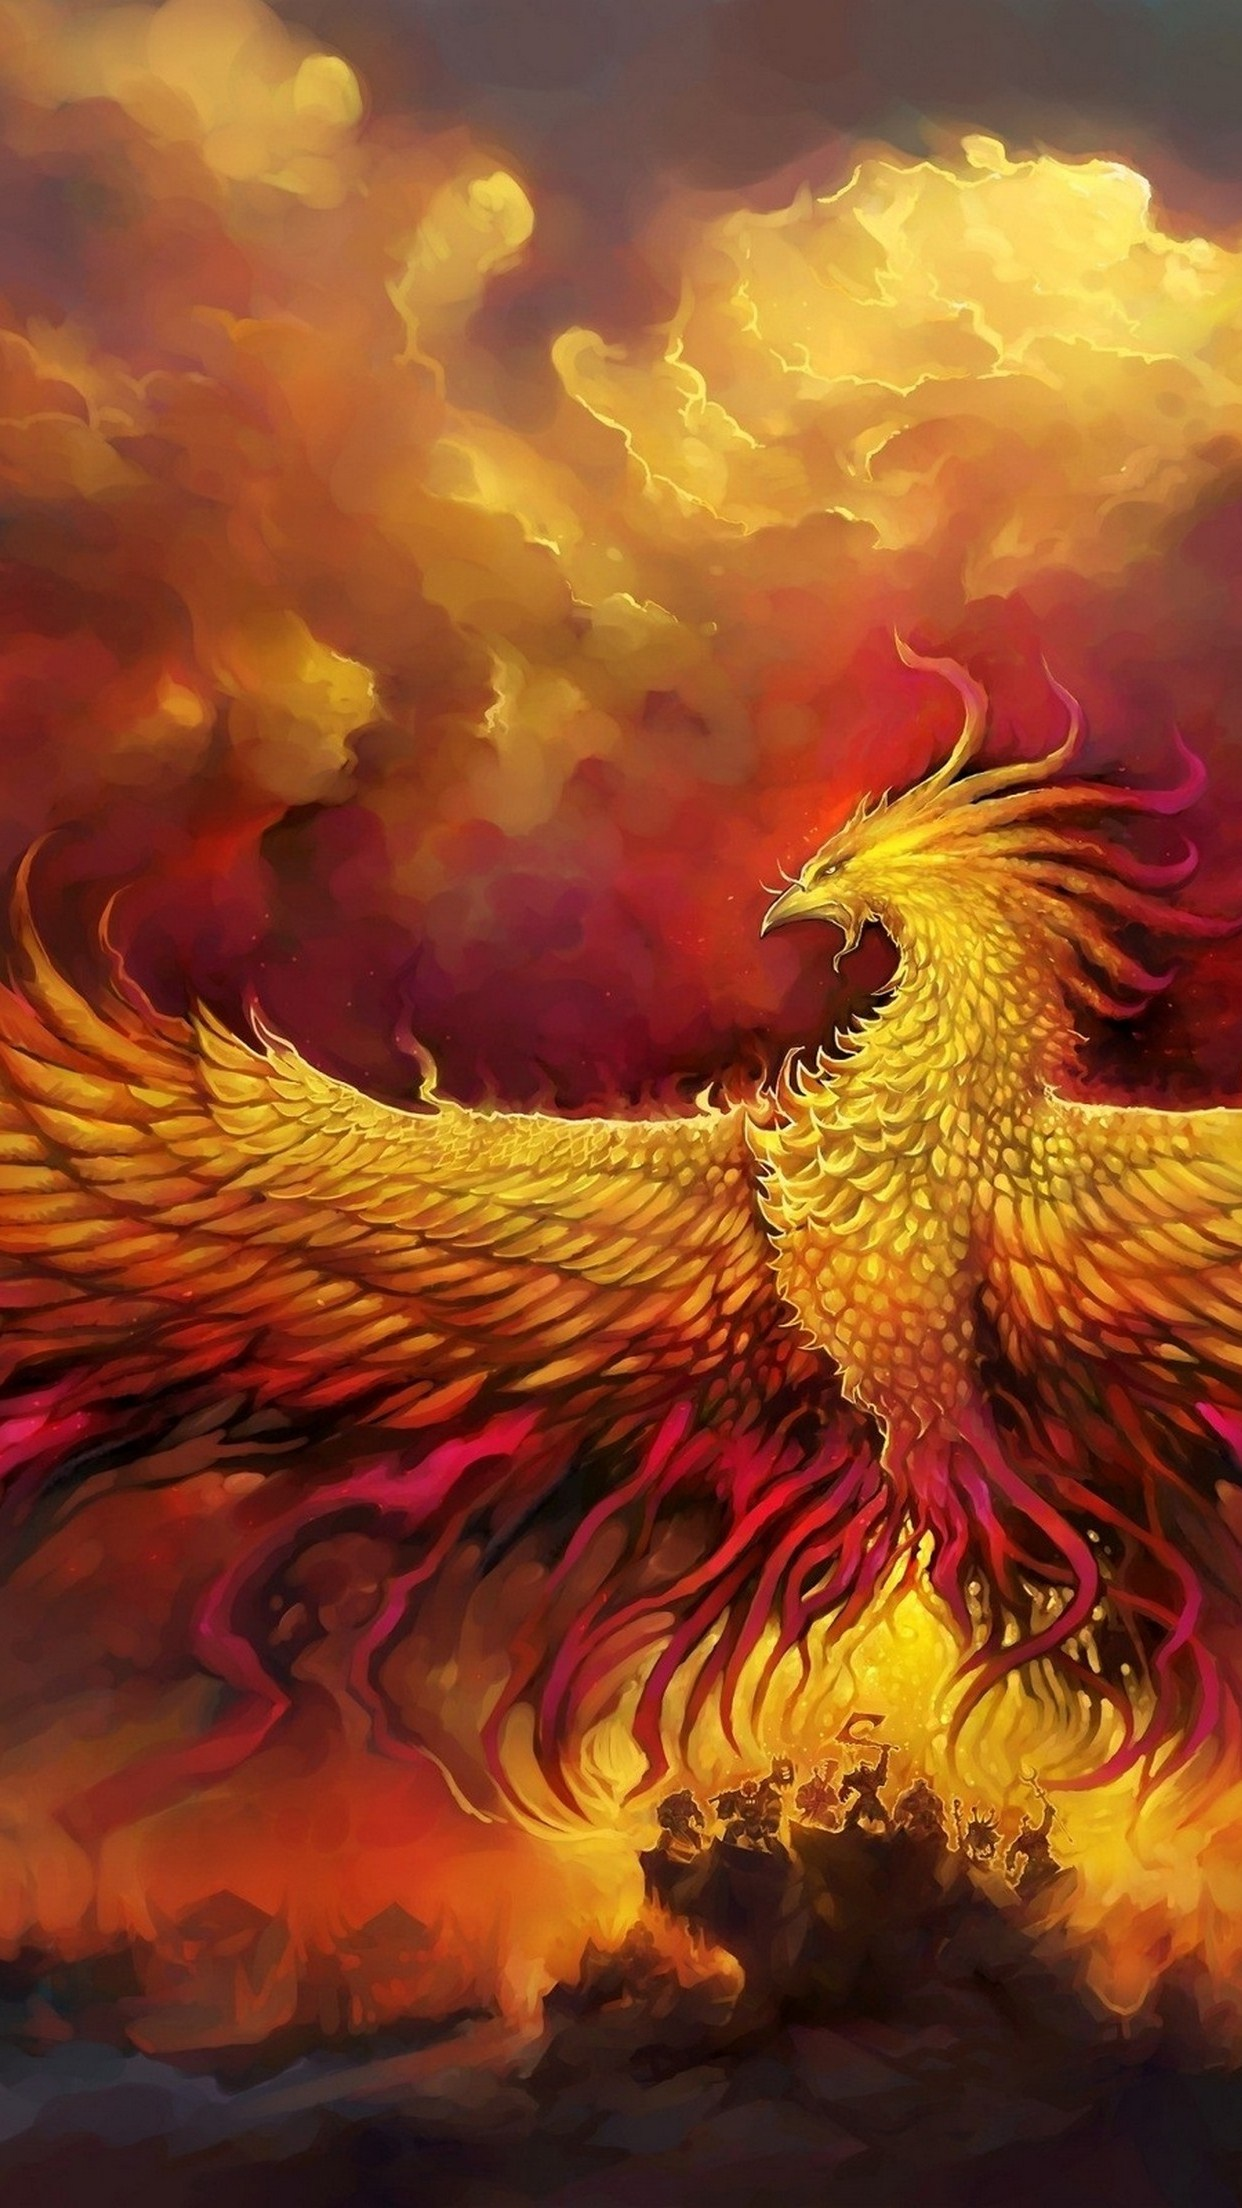 3d Wallpaper Parallax Free Phoenix Wings Wallpaper For Iphone X 8 7 6 Free